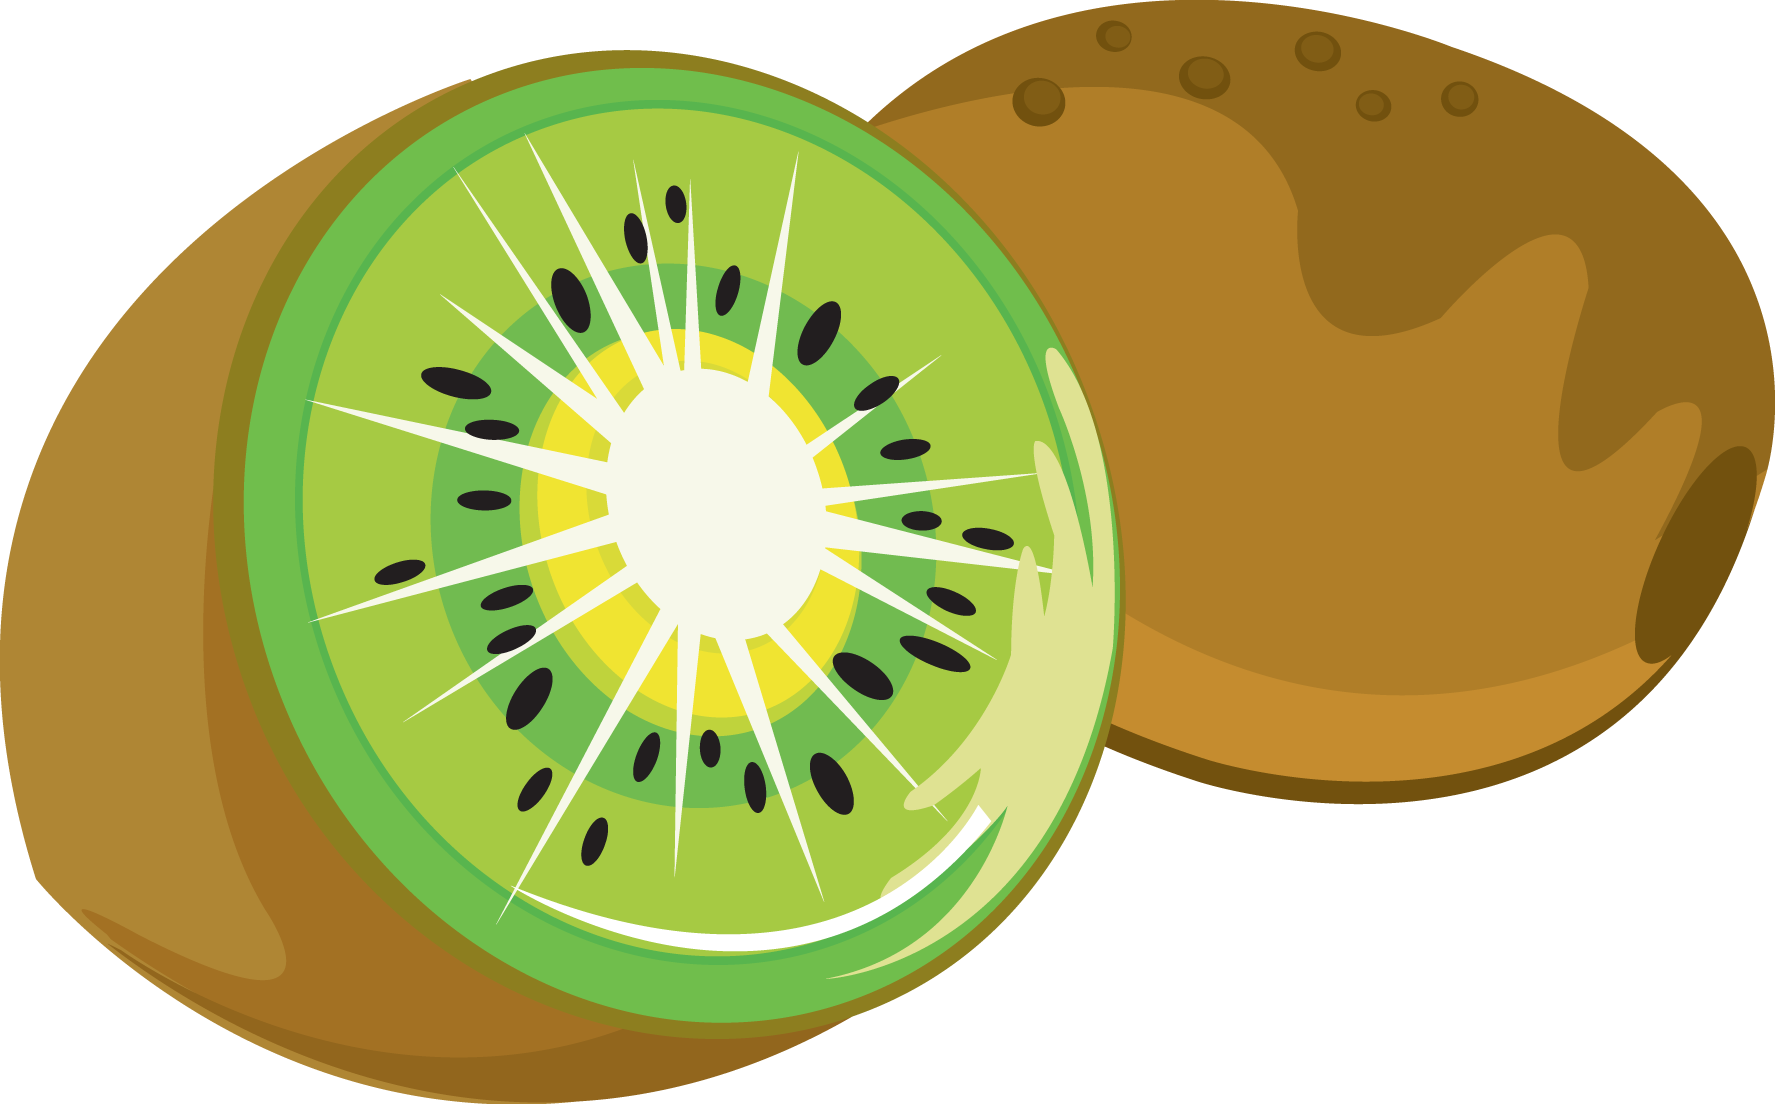 Kiwi clipart sliced.  collection of free